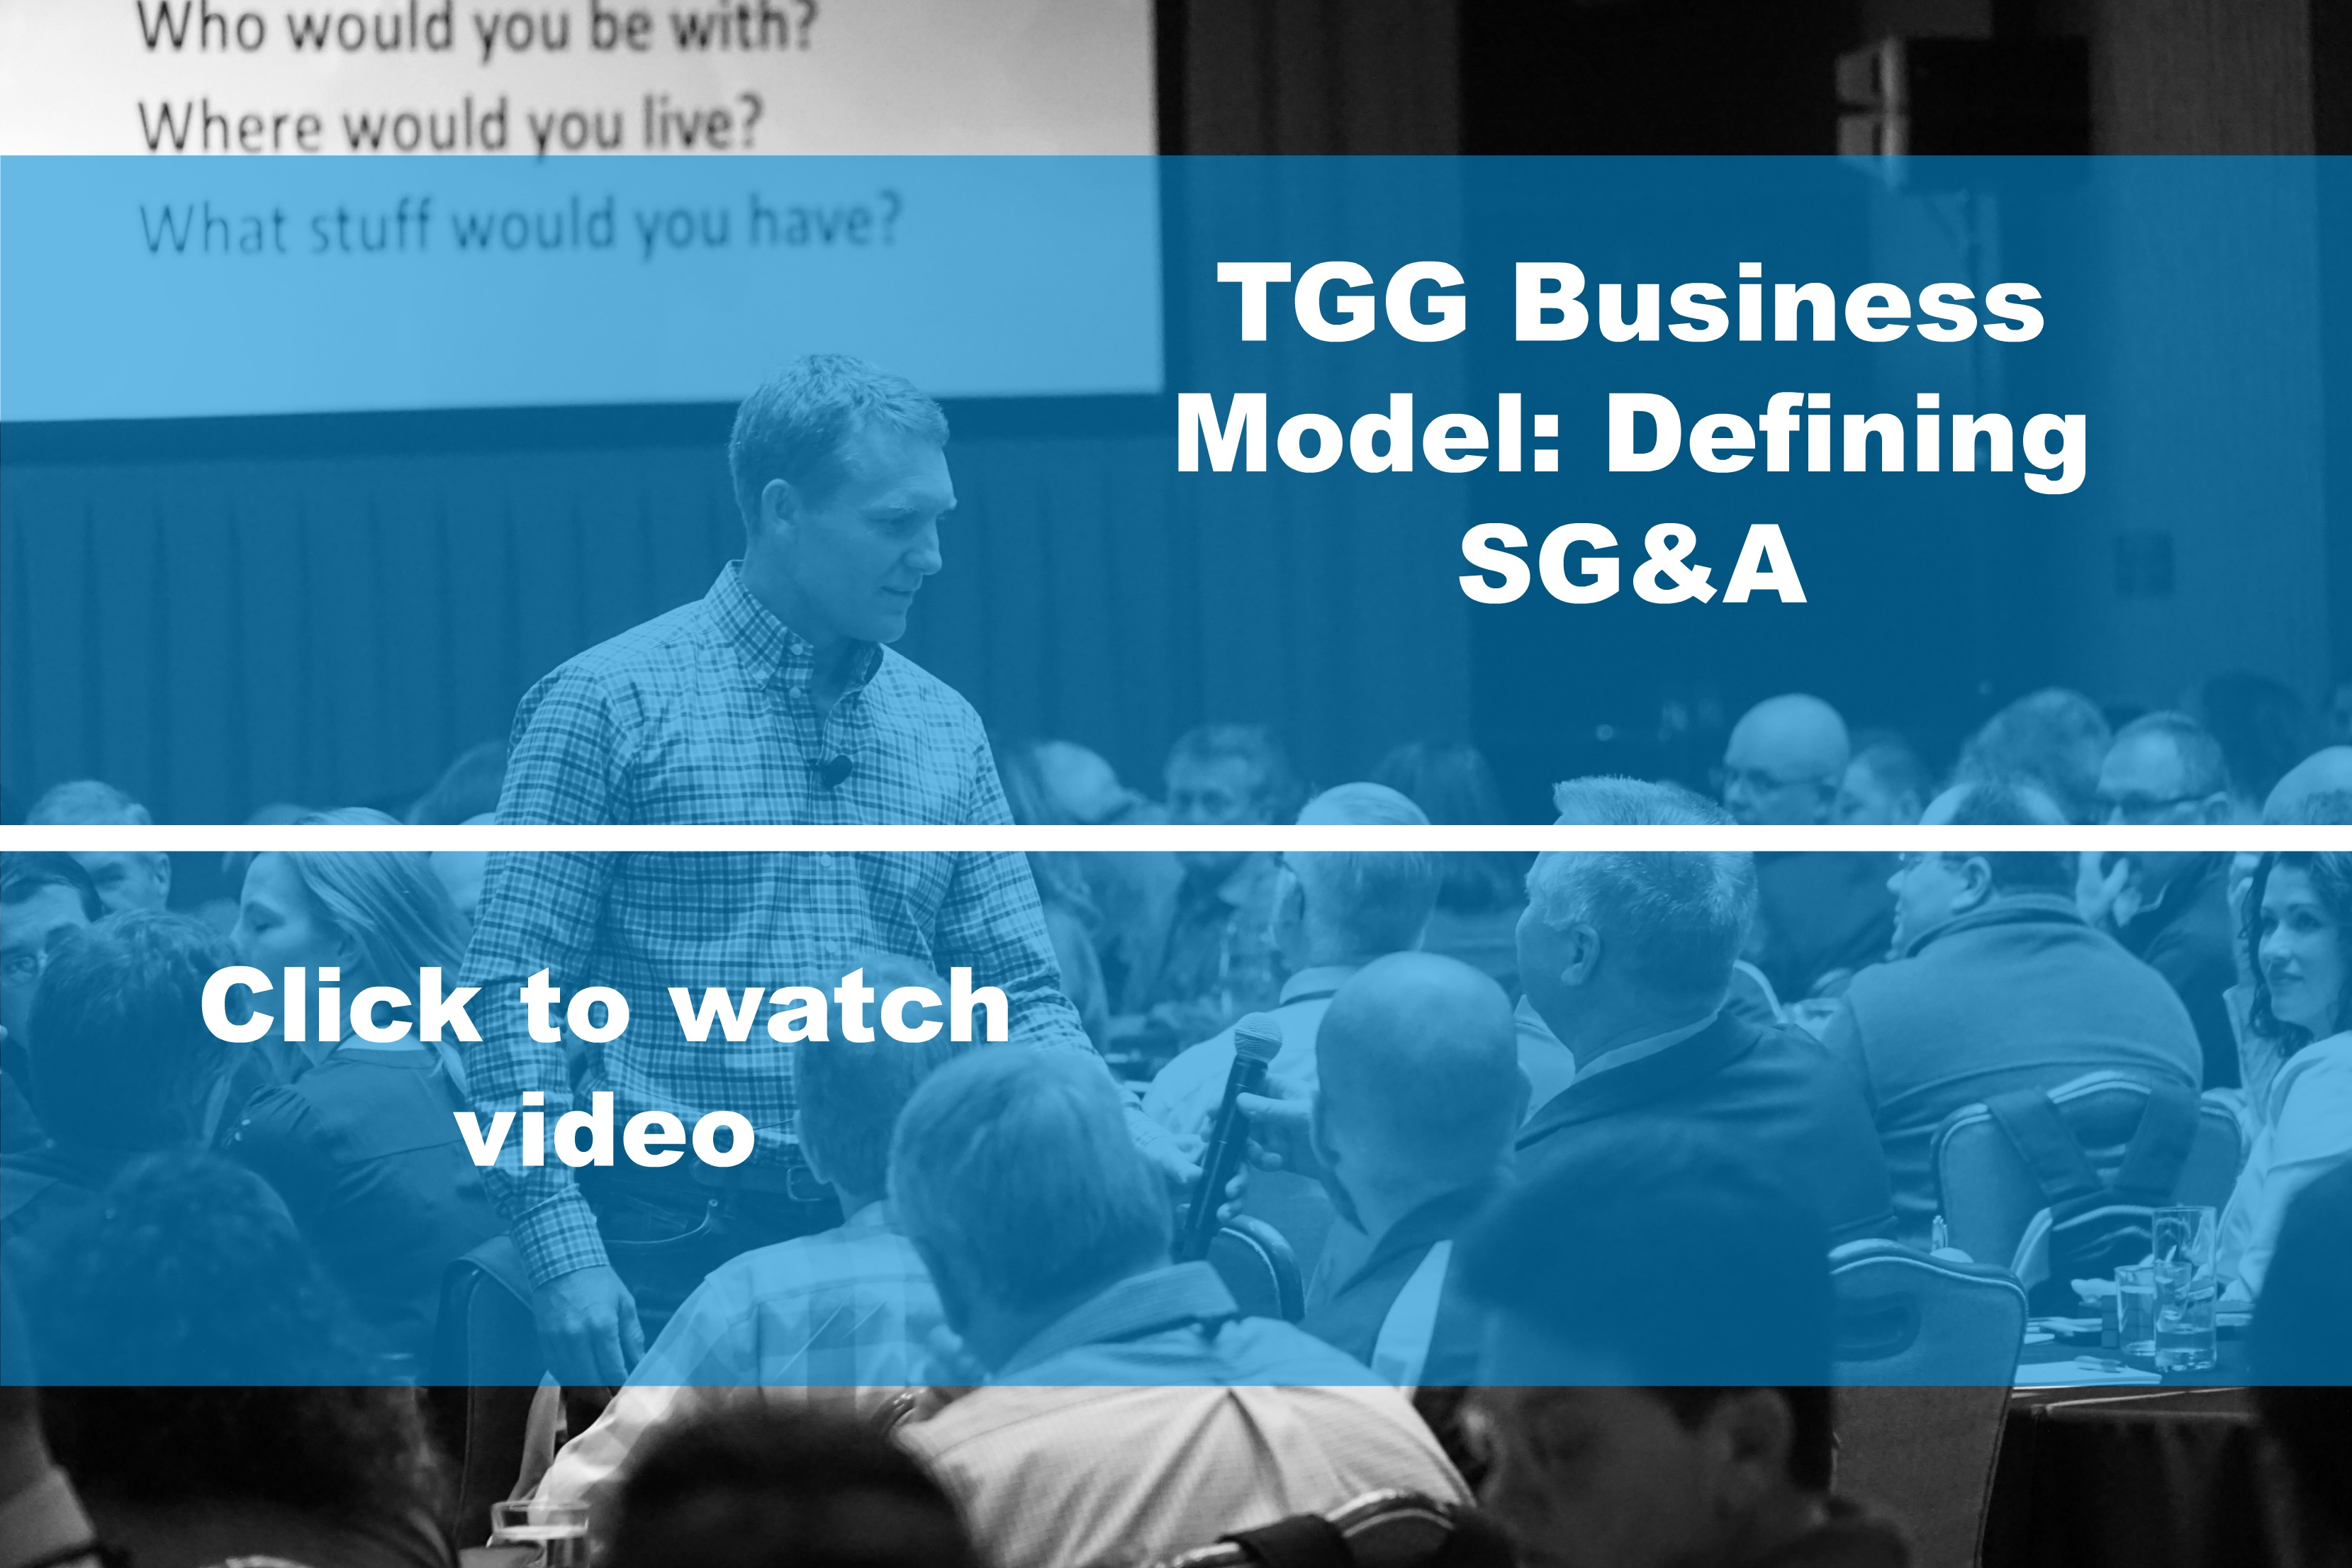 TGG Way Business Model: Defining SG&A